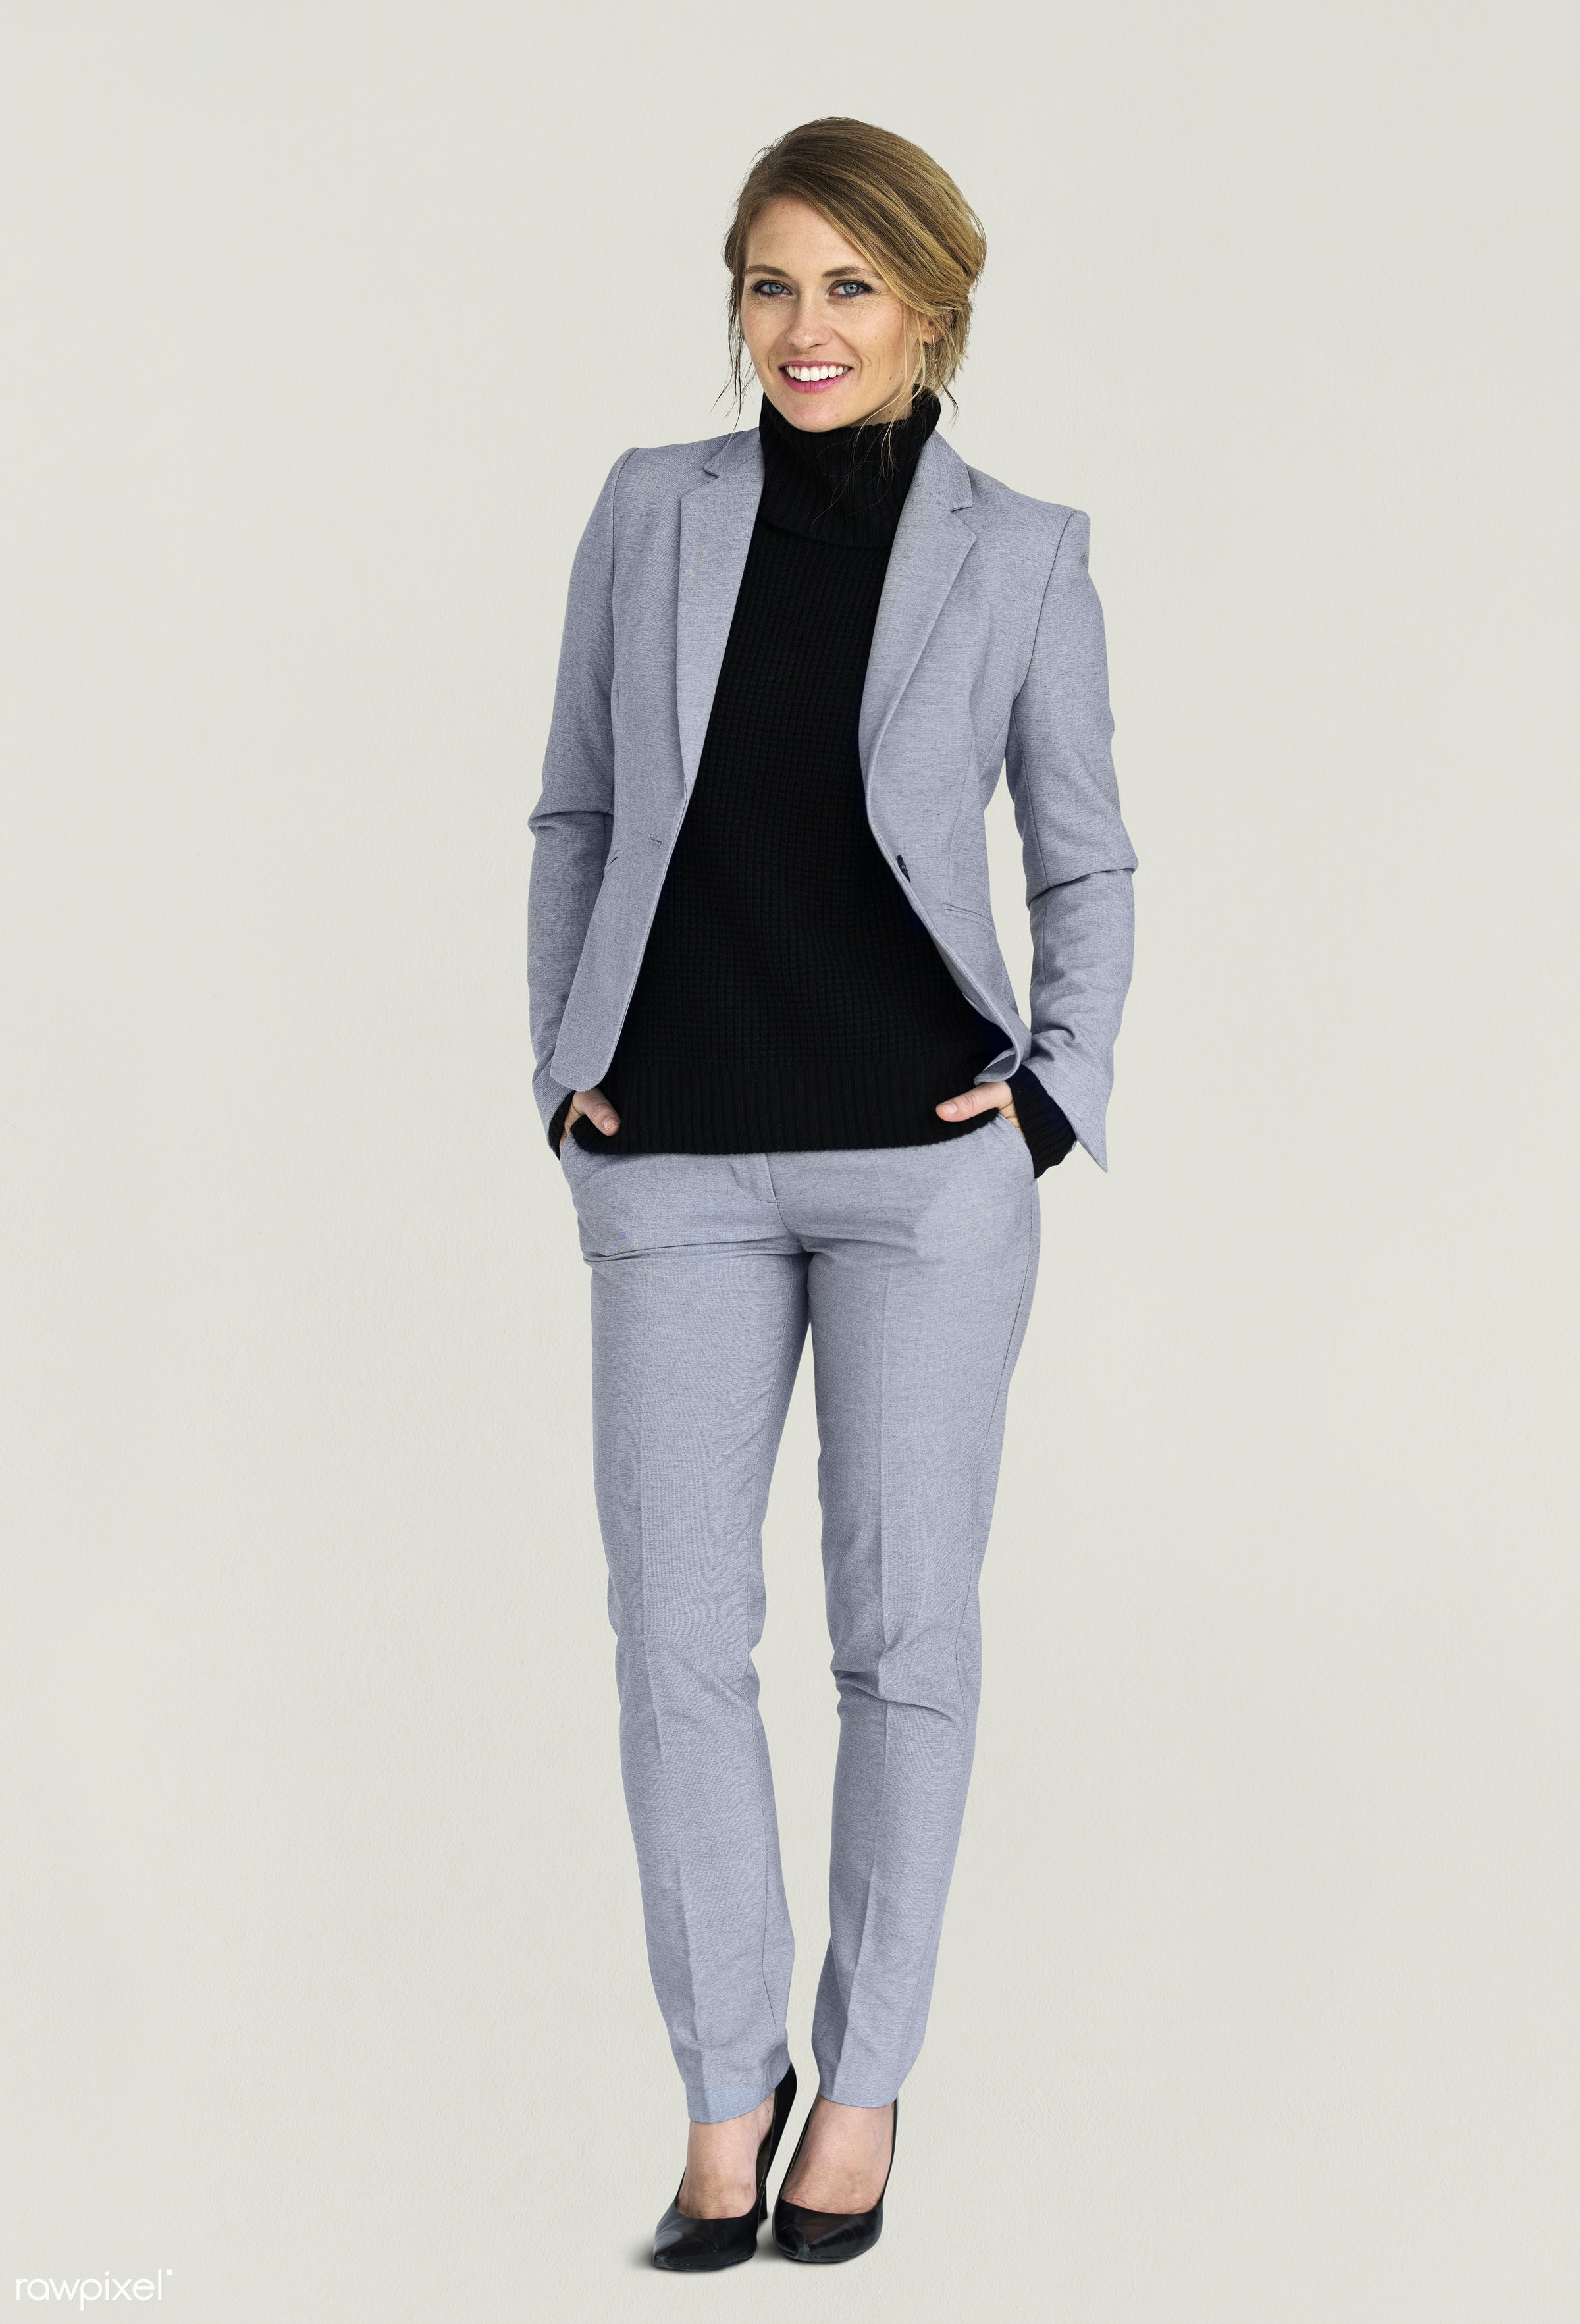 background, business, business wear, business woman, career, cheerful, expression, female, formal, formal dressing, girl,...